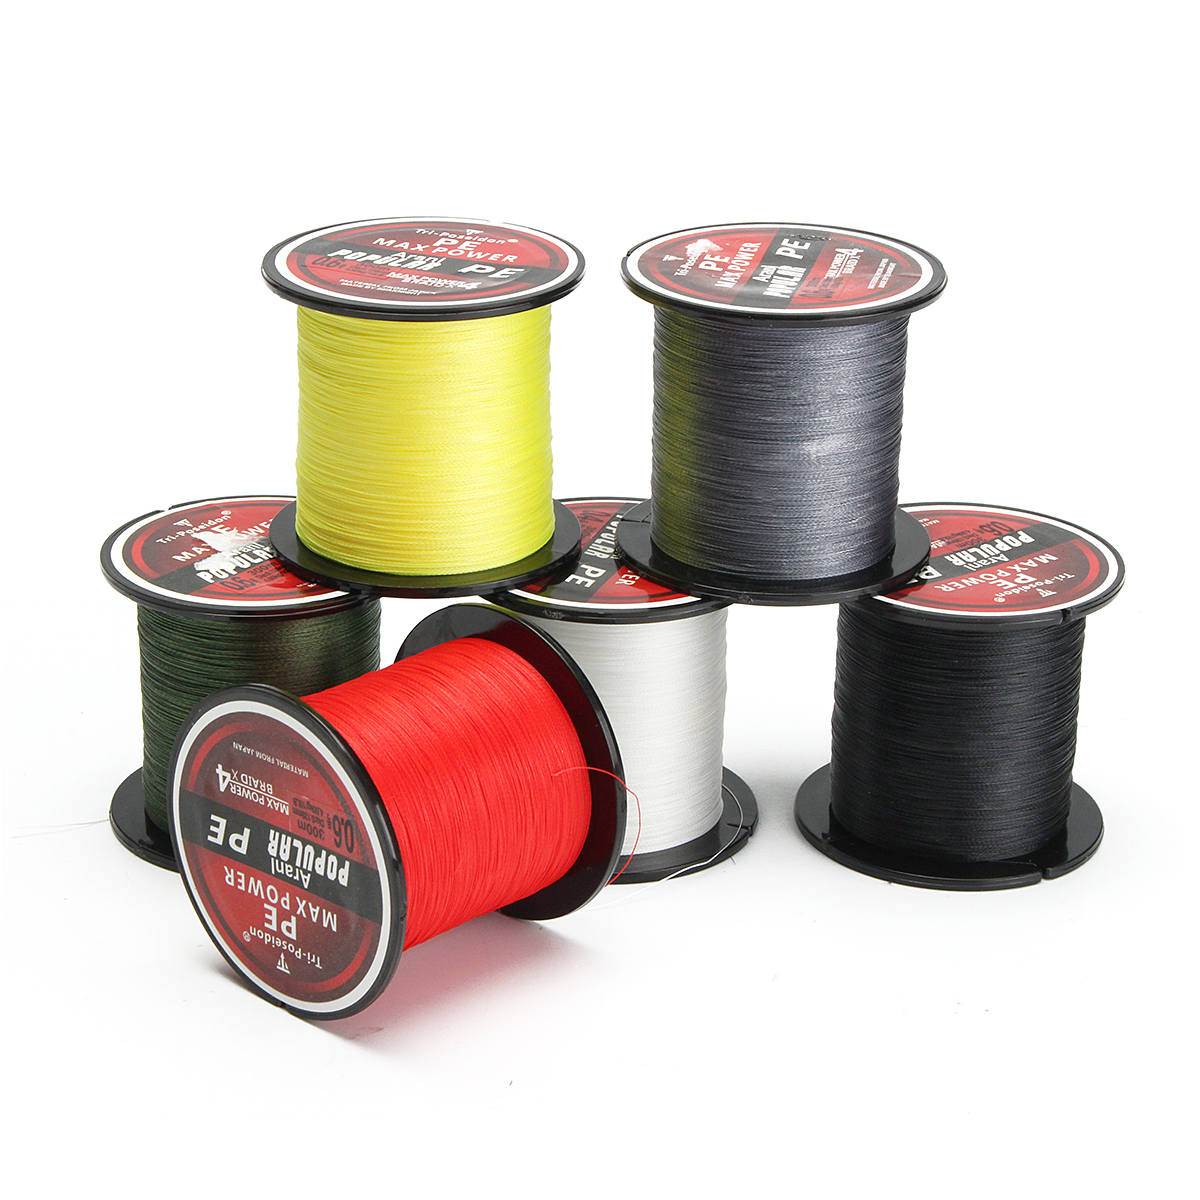 1 x fishing line. More Detailed Photos: 300M Super Strong 4 Strands PE Spectra Braided ...